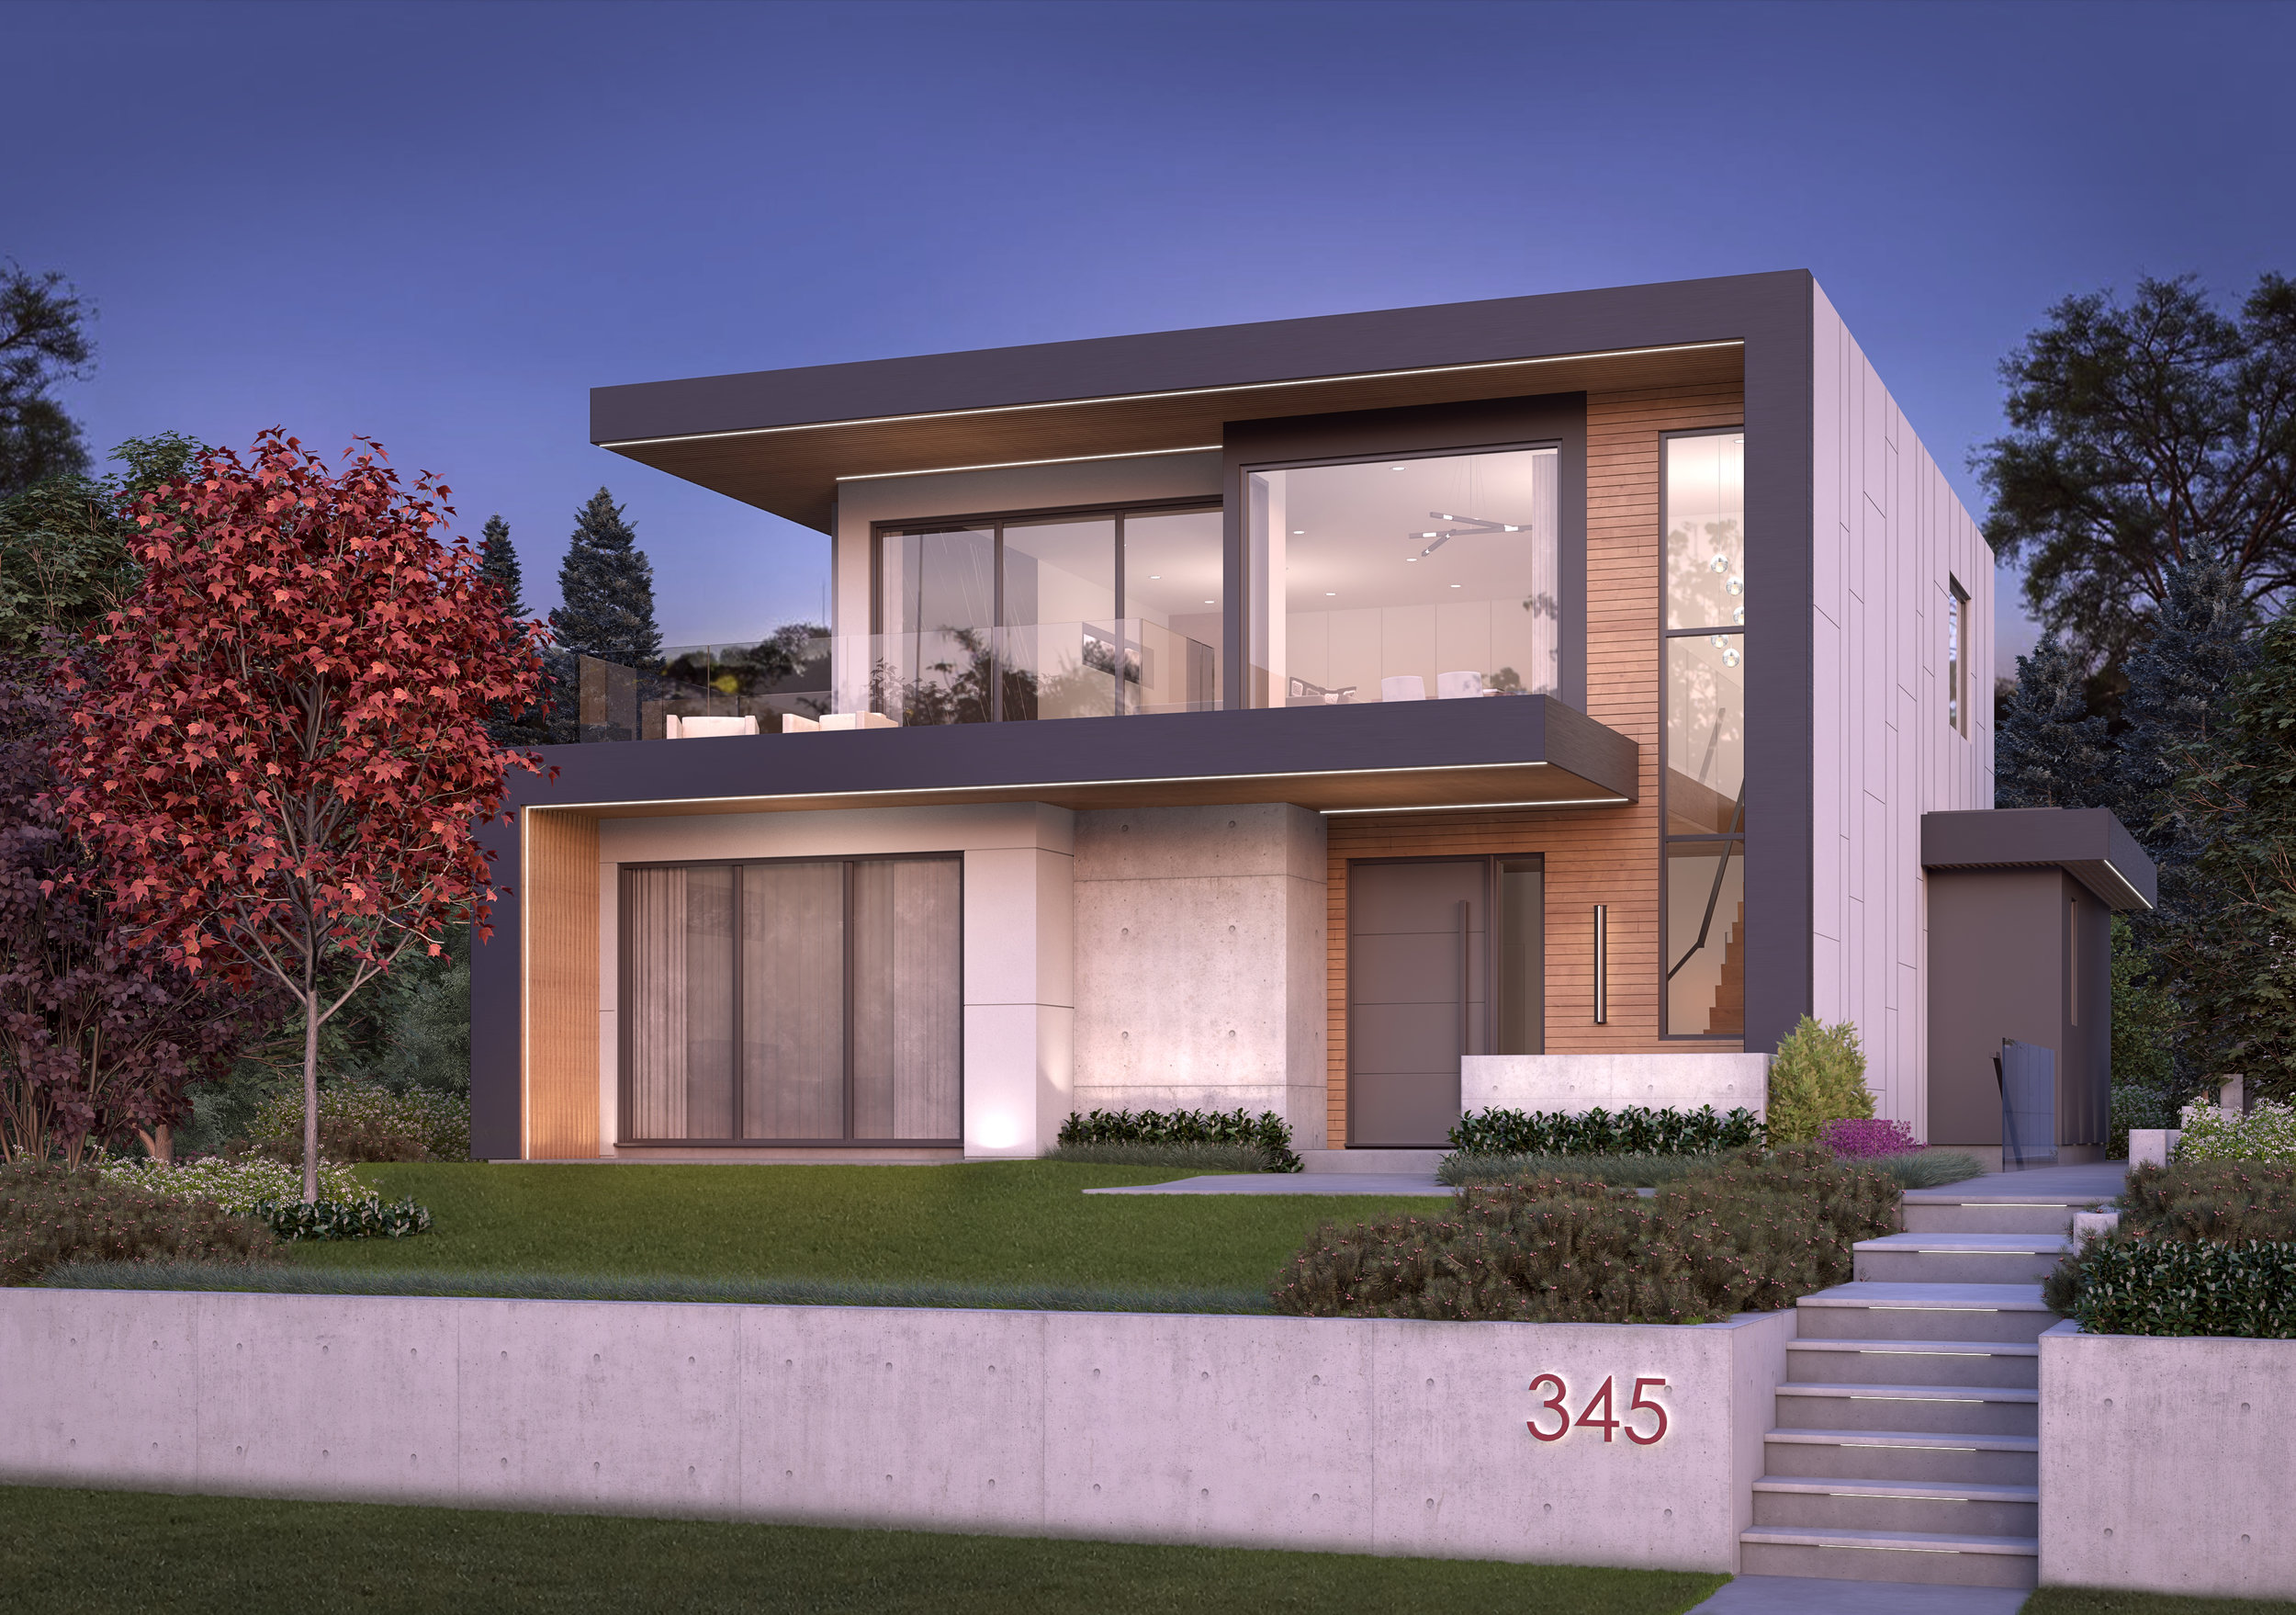 north vancouver architectural rendering house